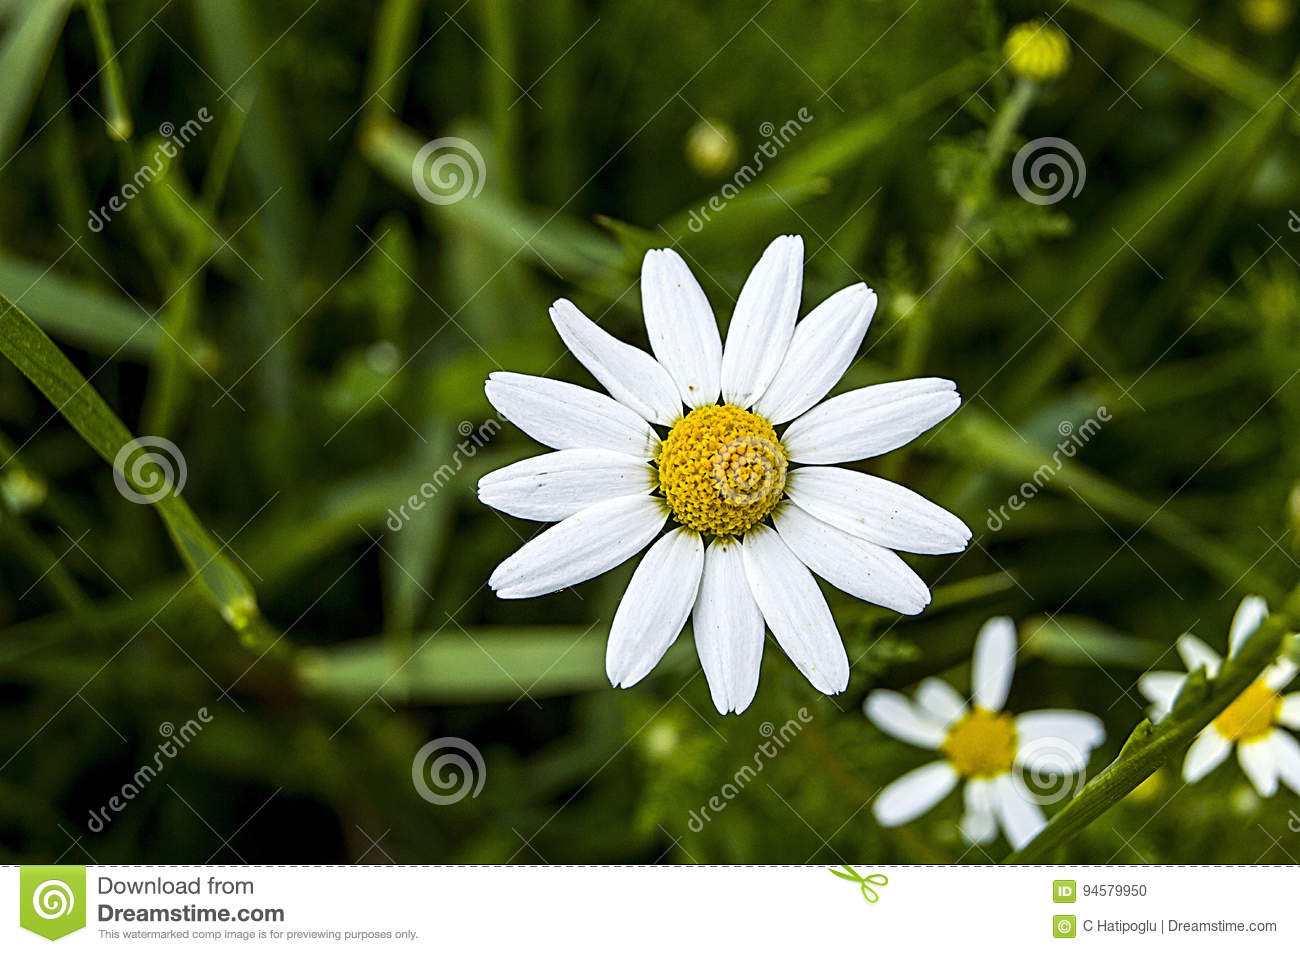 Daisy flowers pictures of daisy flowers for lovers day the most royalty free stock photo izmirmasajfo Images